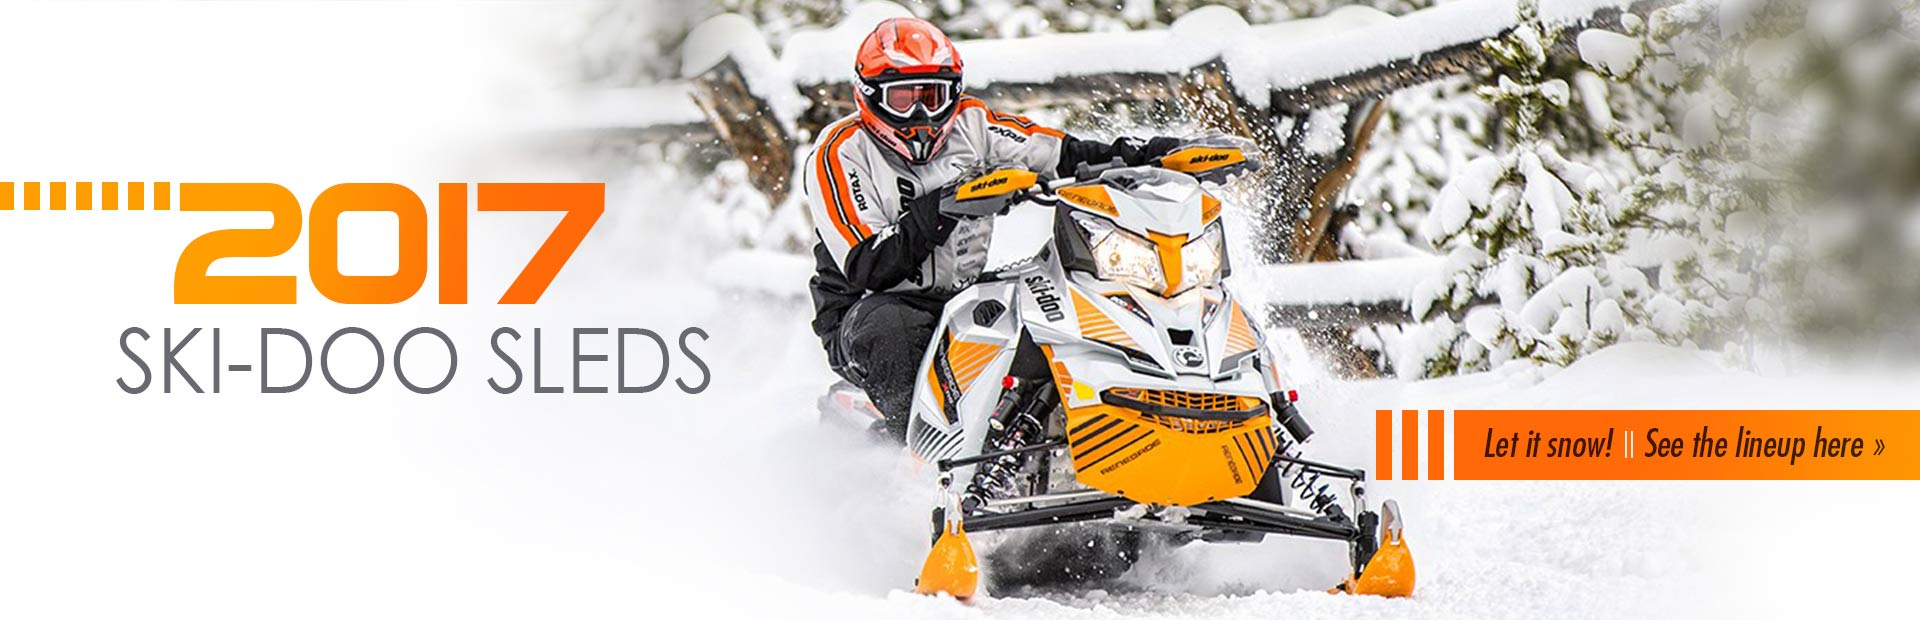 2017 Ski-Doo Sleds: Click here to see the lineup!